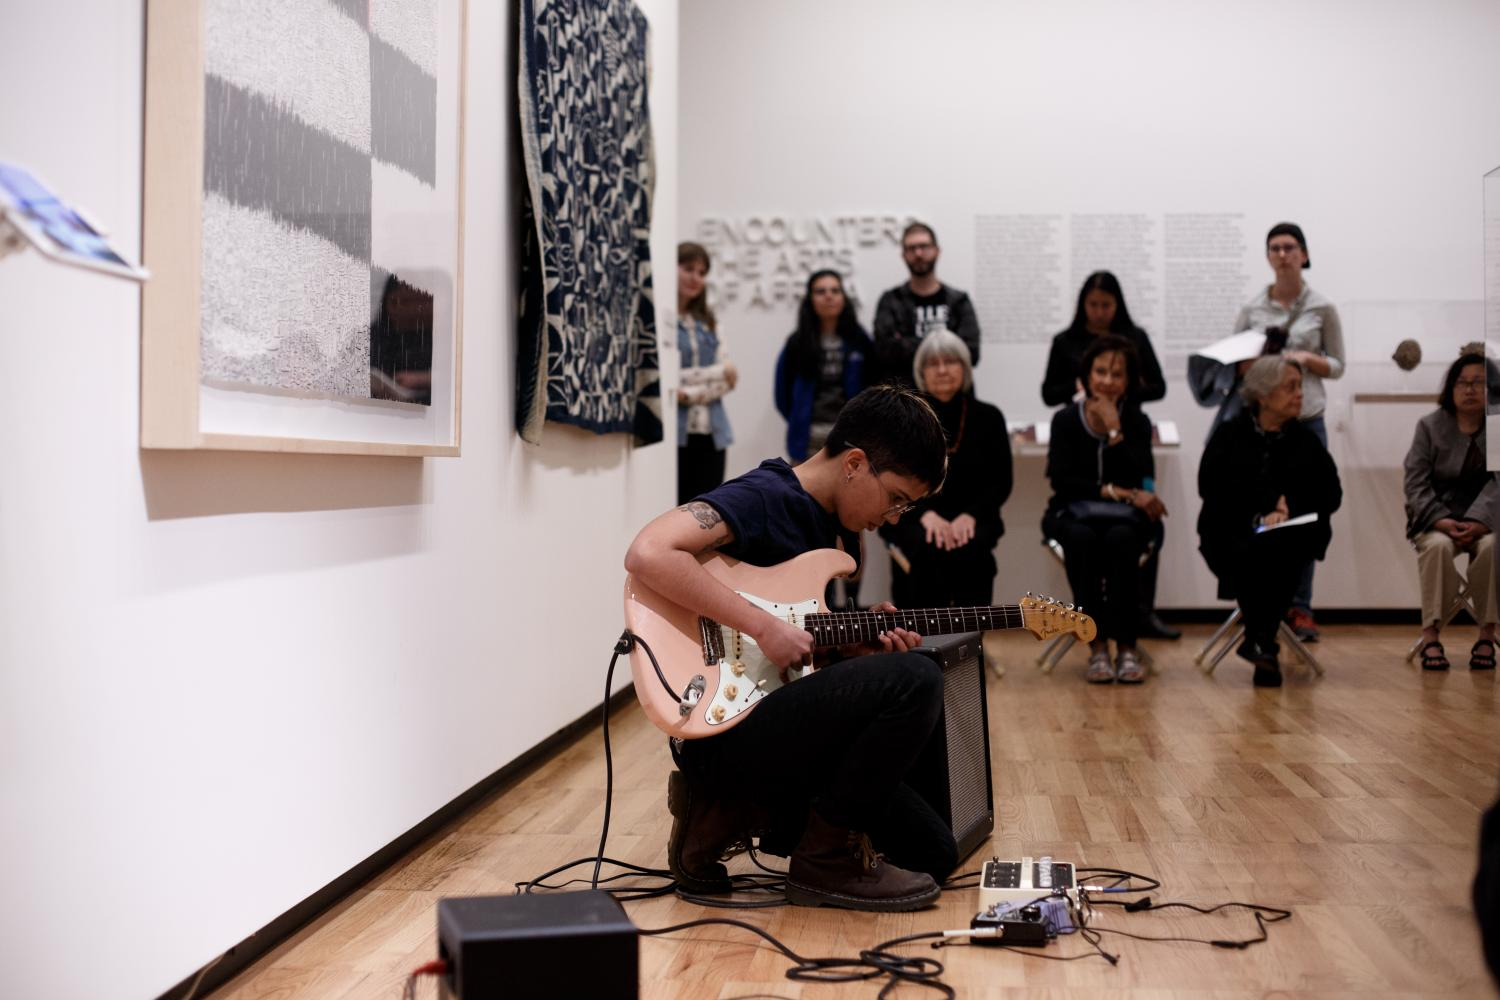 Olguie Freyre-Homar performing at Art Remastered at Krannert Art Museum, 2017. Photo by Veronica Mullen.